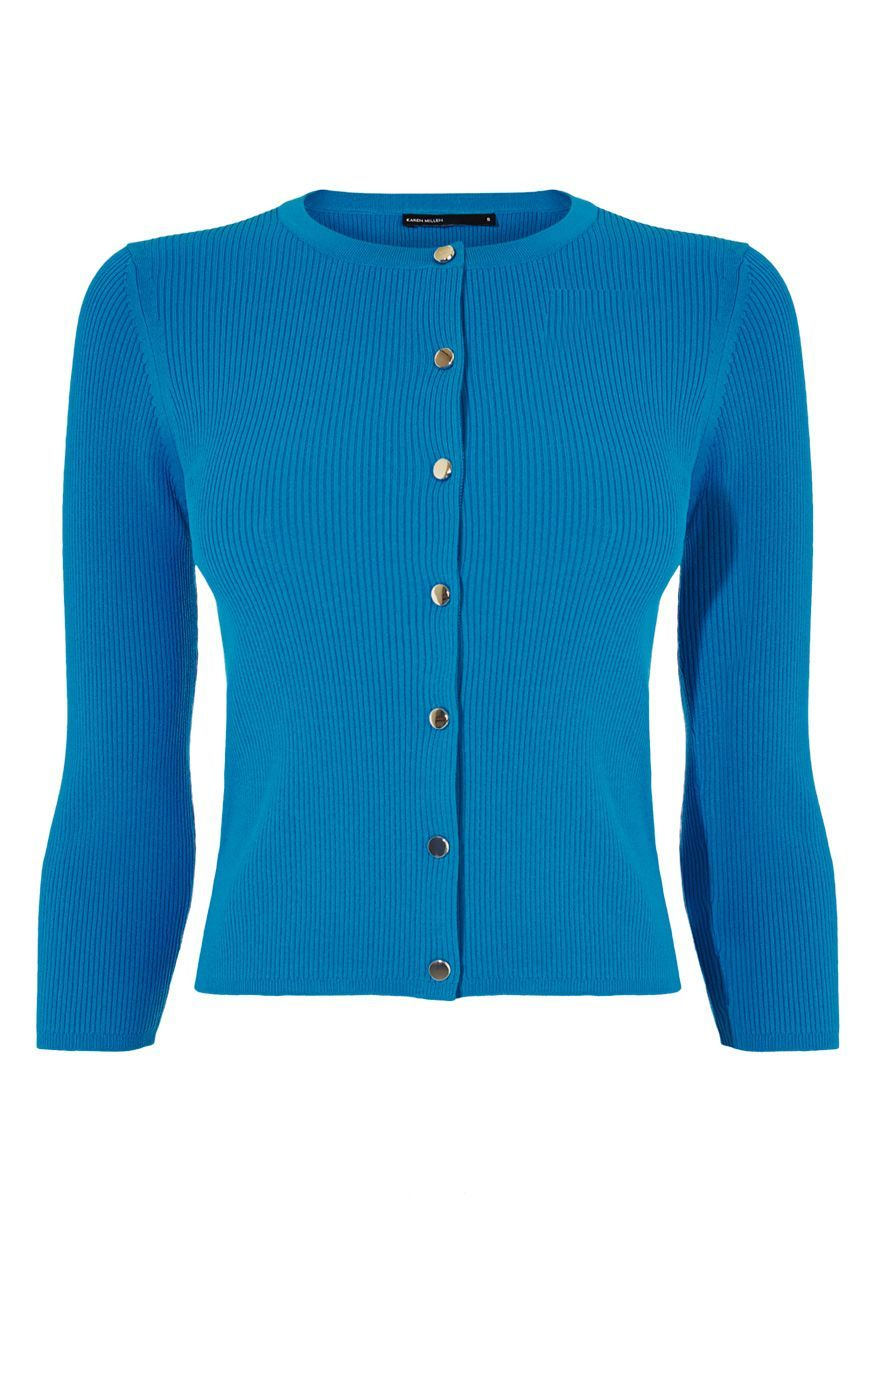 Engineered Rib Knits, Turquoise - pattern: plain; length: cropped; style: standard; predominant colour: diva blue; occasions: casual, creative work; fibres: viscose/rayon - stretch; fit: standard fit; neckline: crew; sleeve length: 3/4 length; sleeve style: standard; texture group: knits/crochet; pattern type: knitted - fine stitch; season: s/s 2016